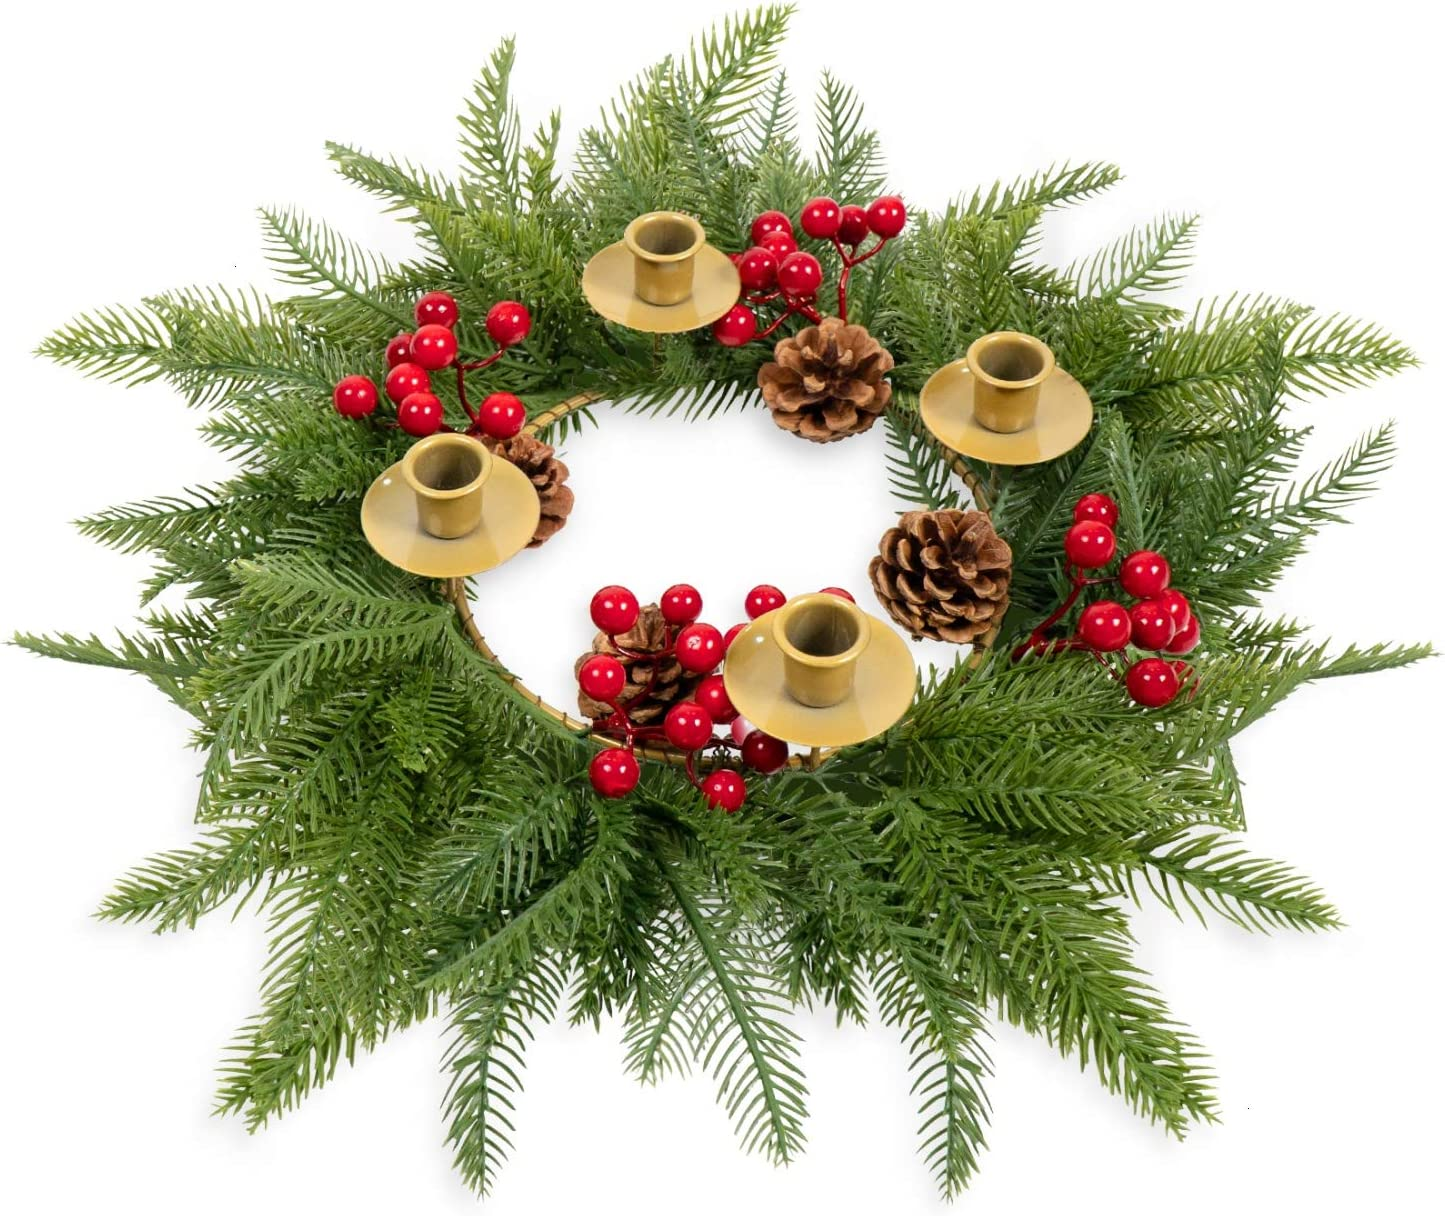 Rocinha Advent Wreath Candle Holder with Red Berry, Evergreen Advent Ring Artificial Christmas Wreath for Advent Centerpiece - Best Advent Decoration for Home (16-inch in Outer Diameter)